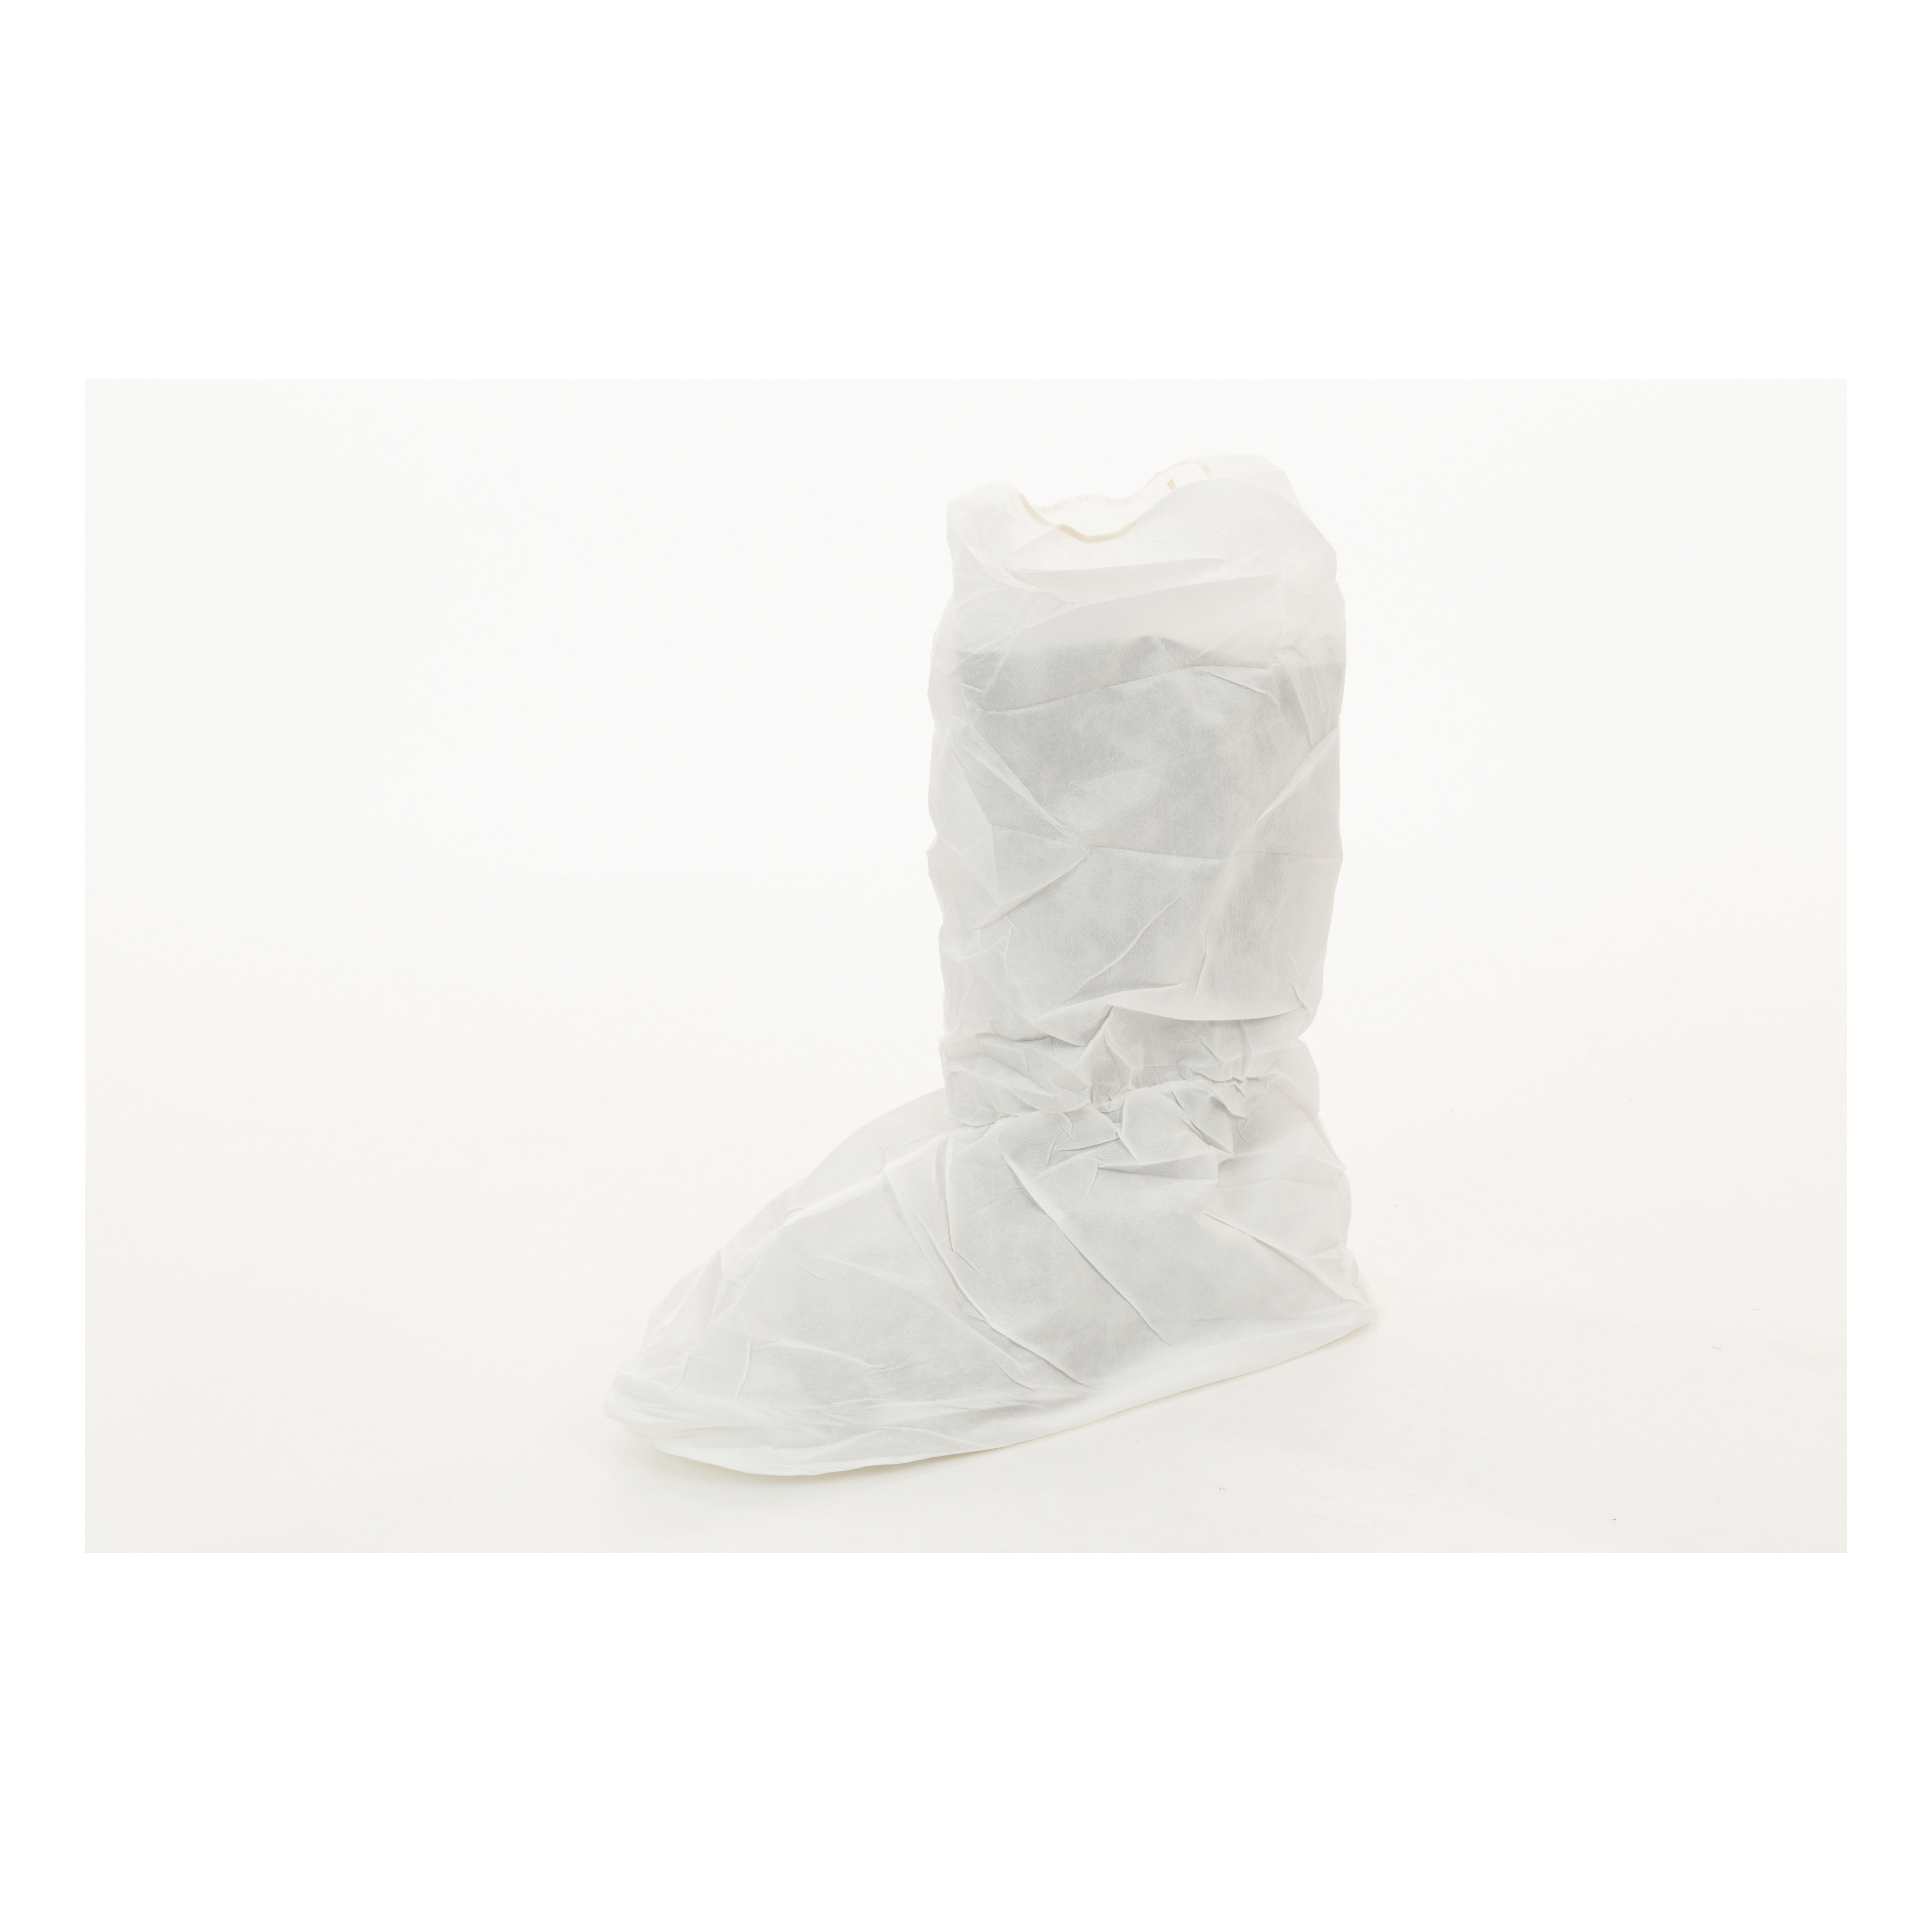 MicroGuard CE® CE8106-BP Clean Processed Shoe Cover With Vinyl Sole, Unisex, XL Fits Shoe, White, Elastic Closure, Microporous Fabric Outsole, Resists: Tear, Specifications Met: ASTM T903, INDA IST 100.2, AATCC 127, CPSC 1610, GB/T 12074-1991